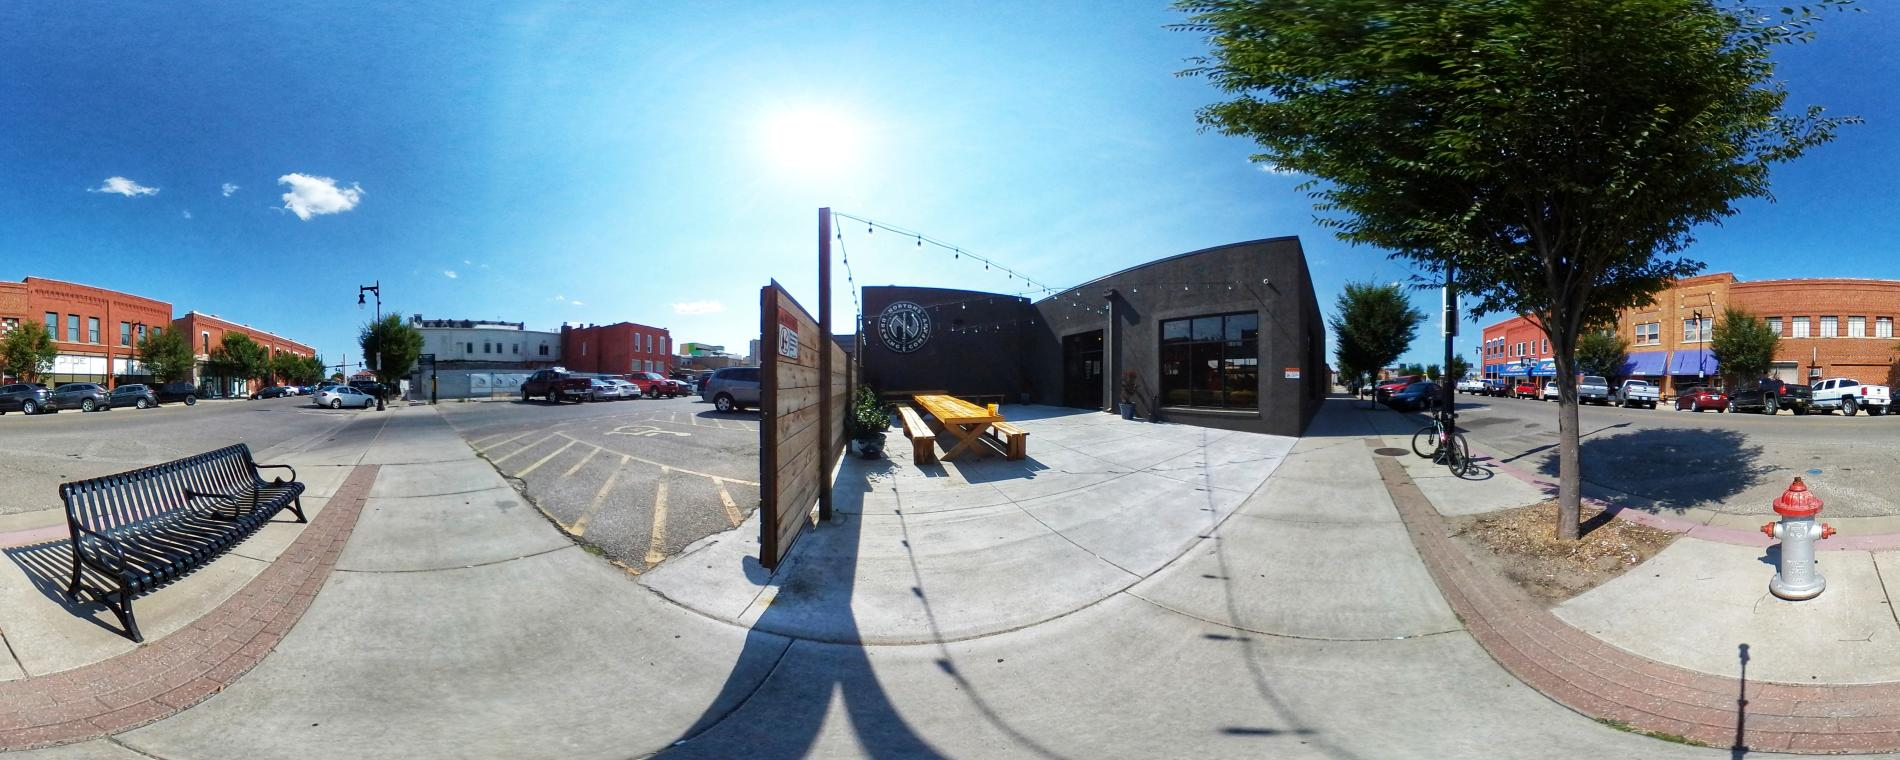 360 View of Nortons Brewing Company